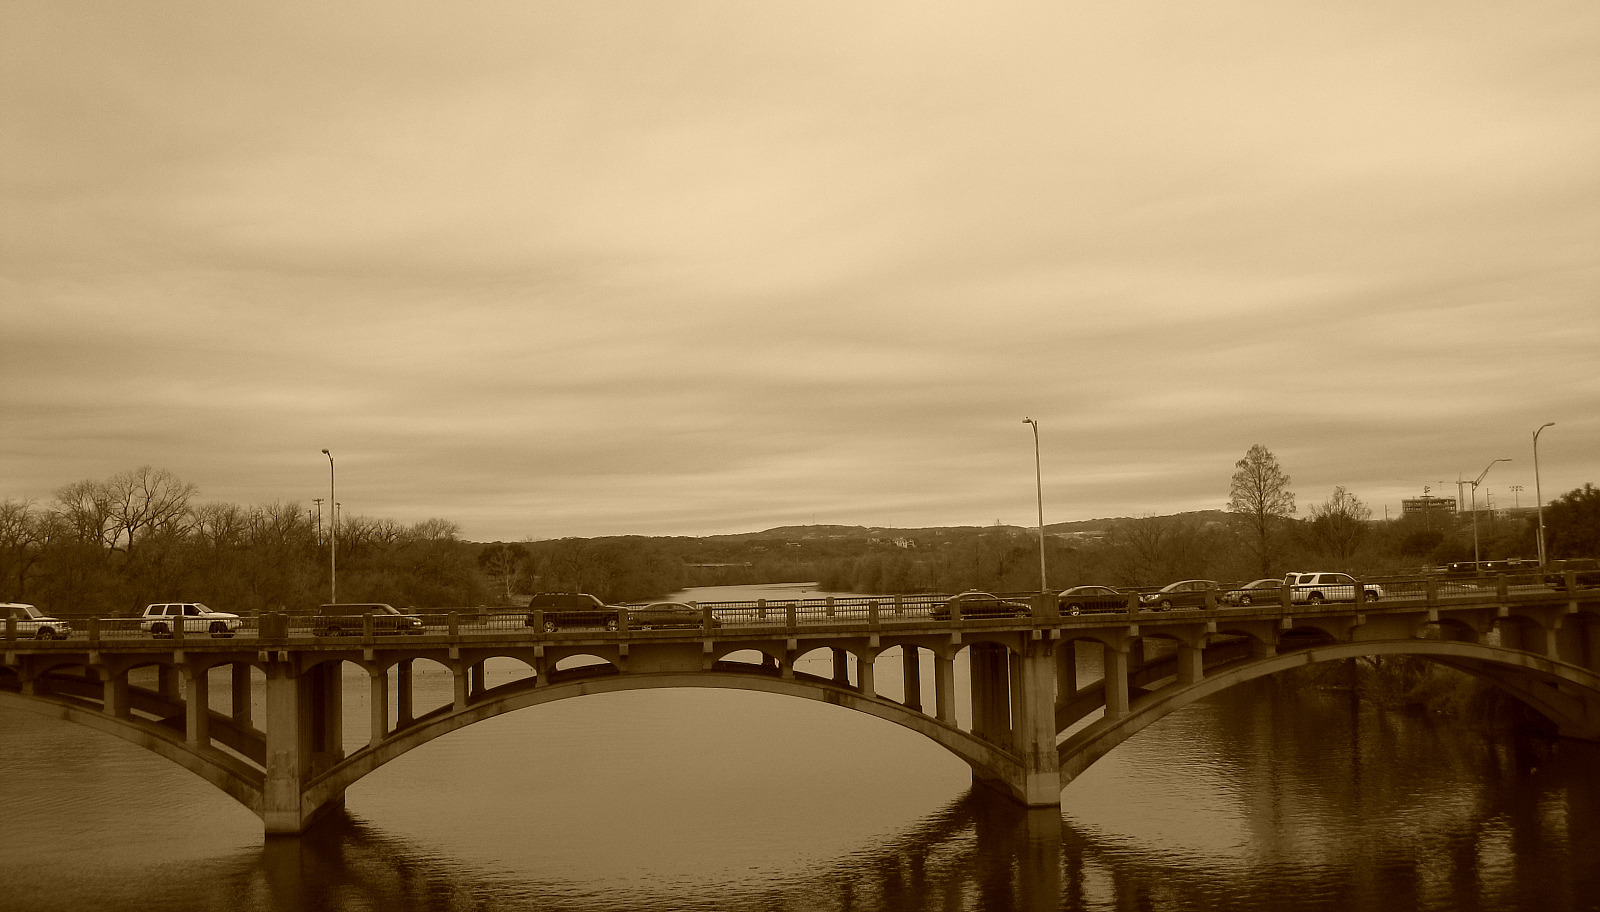 Here's its sepia look: